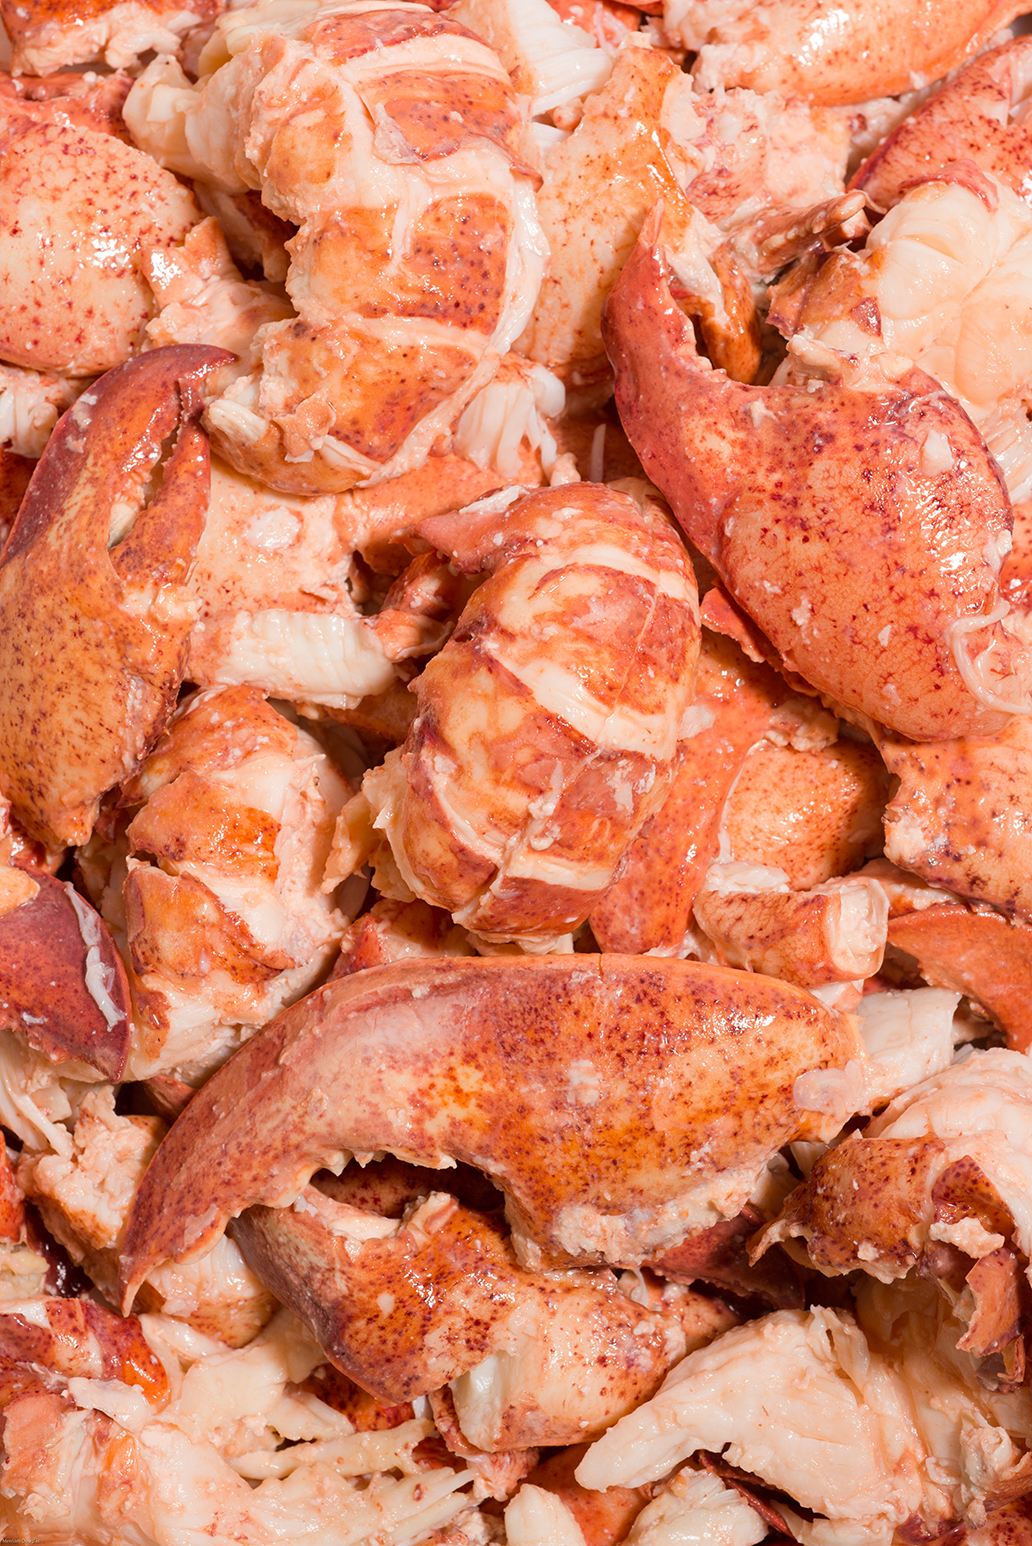 Fresh Maine Lobster Meat • Harbor Fish Market